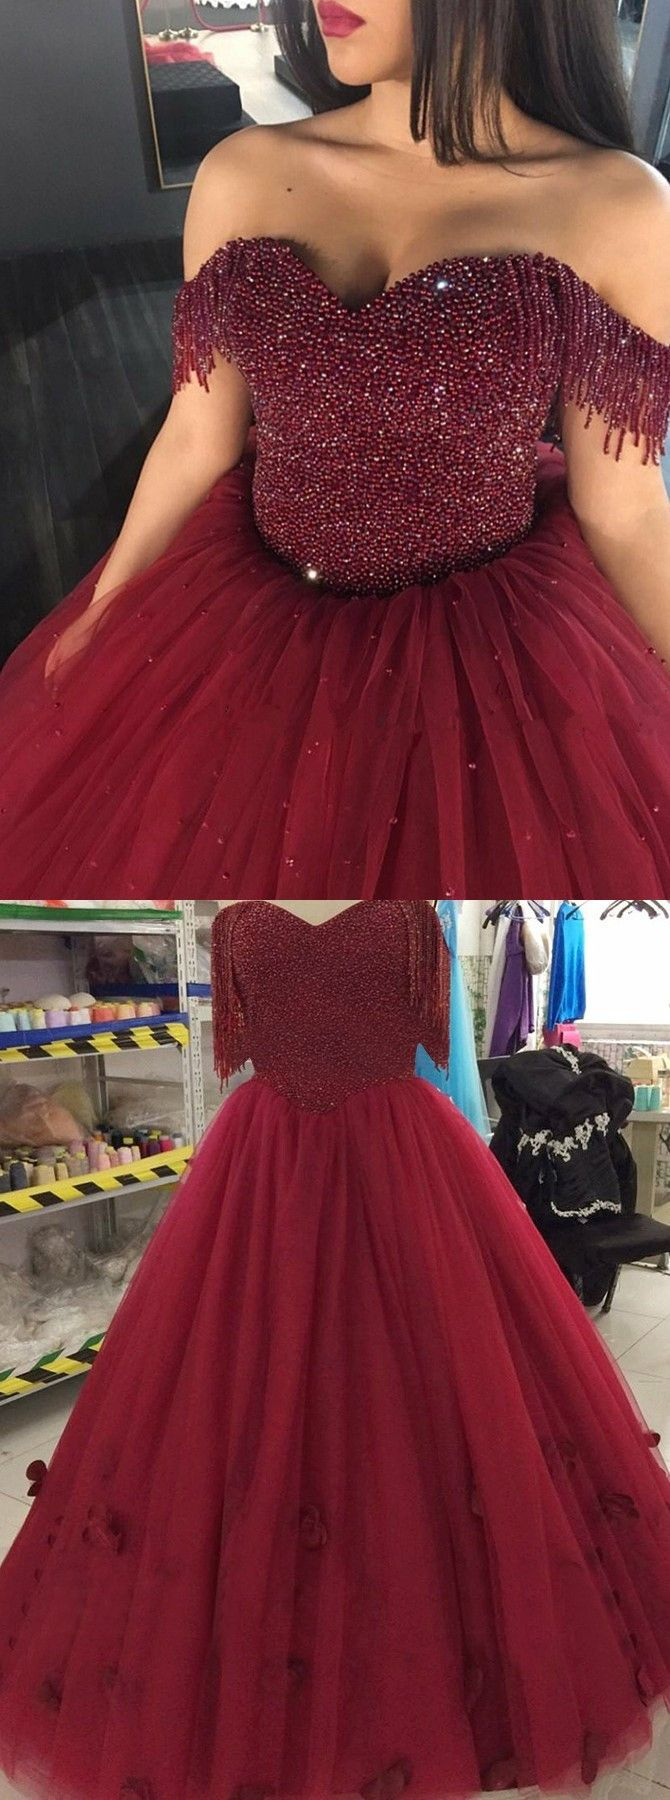 Ball Gown Off-the-Shoulder Burgundy Tulle Quinceanera Dress with ...